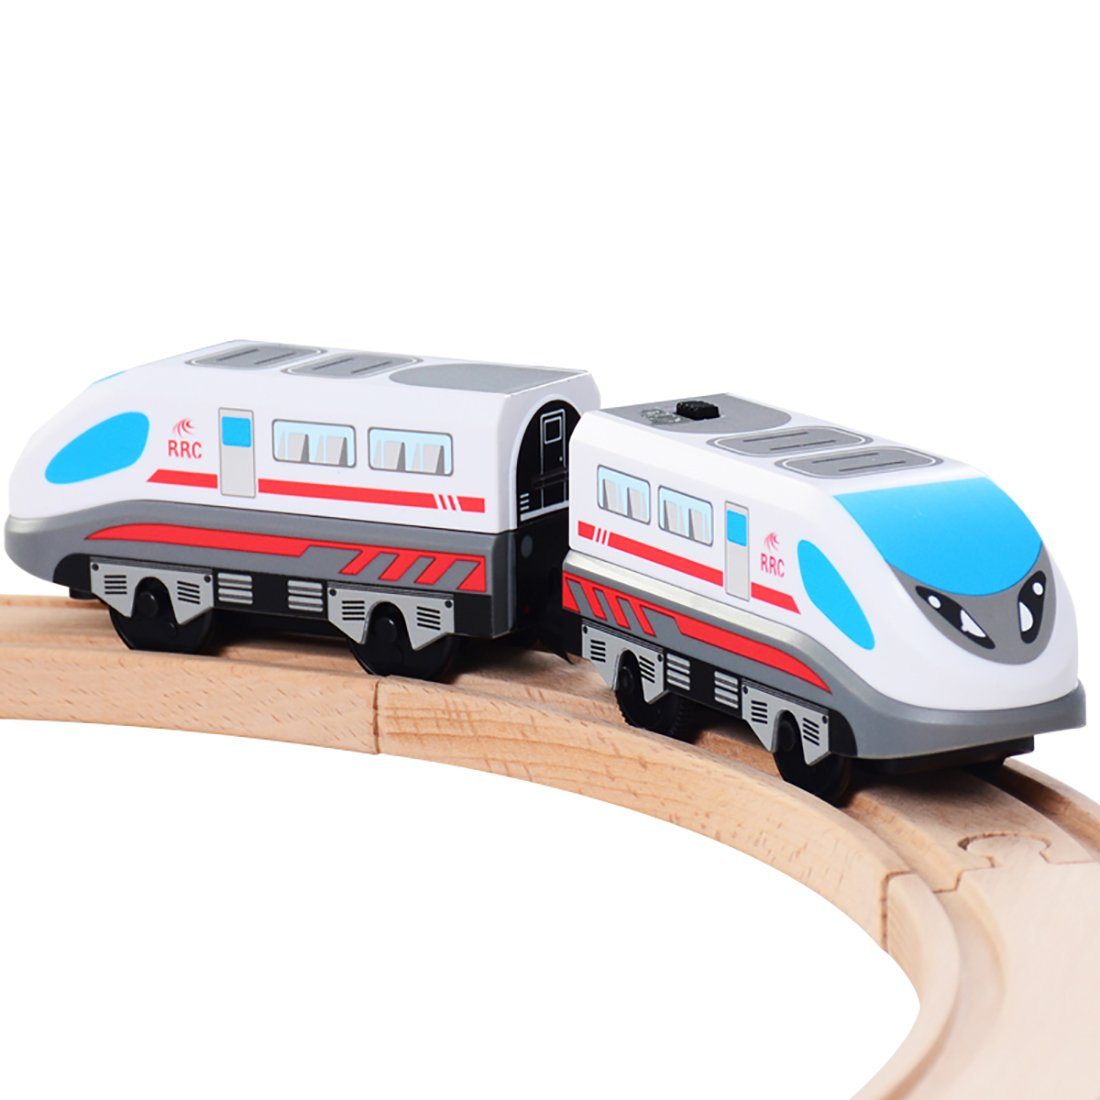 ZONXIE Magnetic Battery Operated Action Train Powerful Engine Bullet Train Toys Car for Toddlers Compatible with Thomas Brio Tracks by ZONXIE